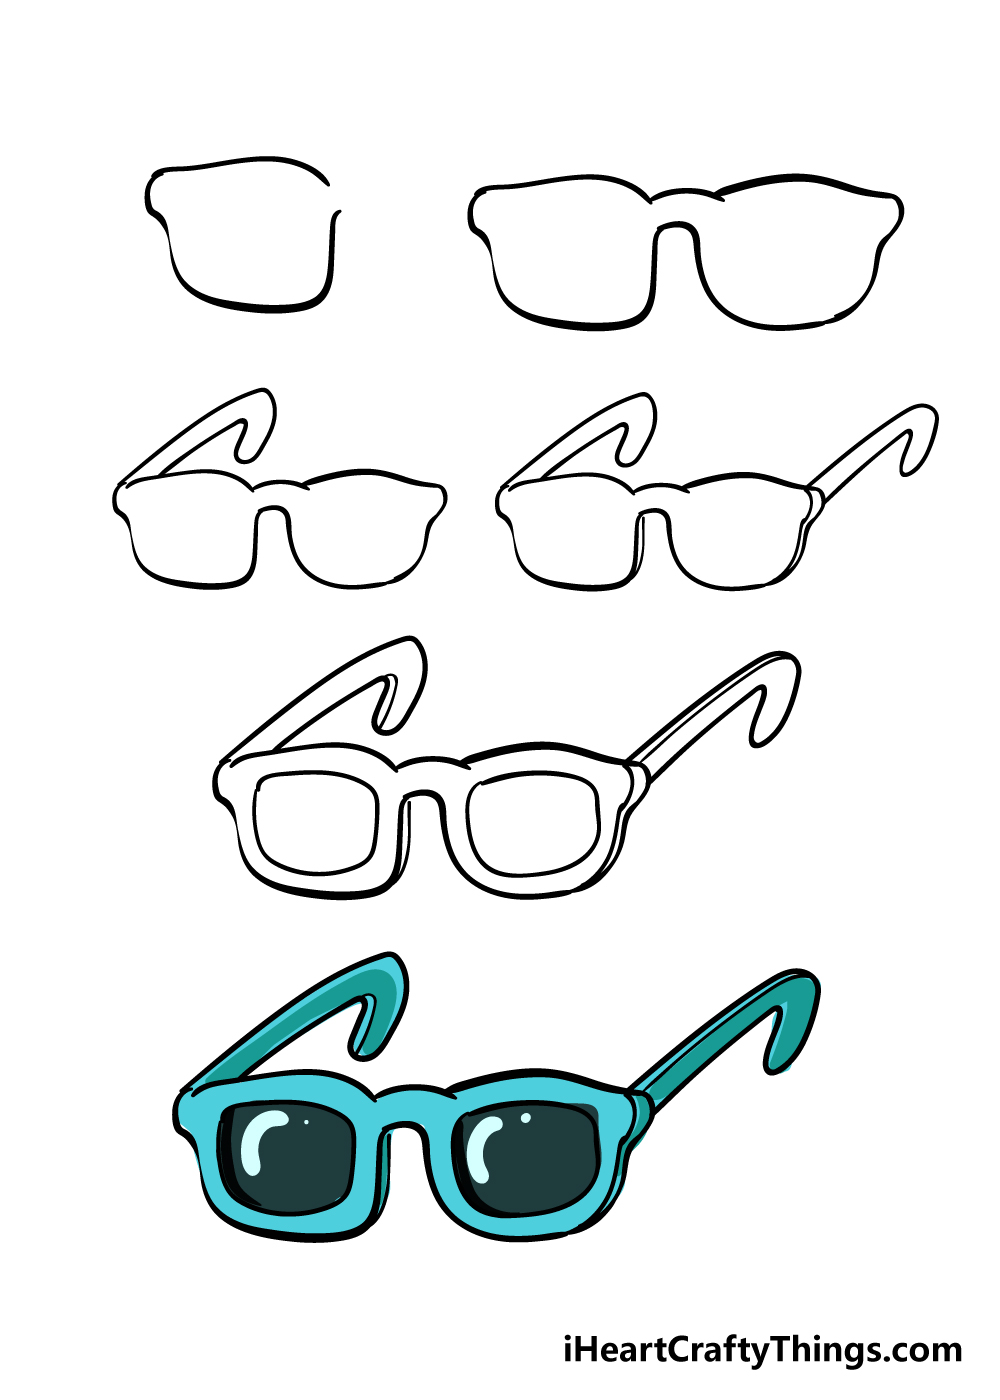 how to draw glasses in 6 steps